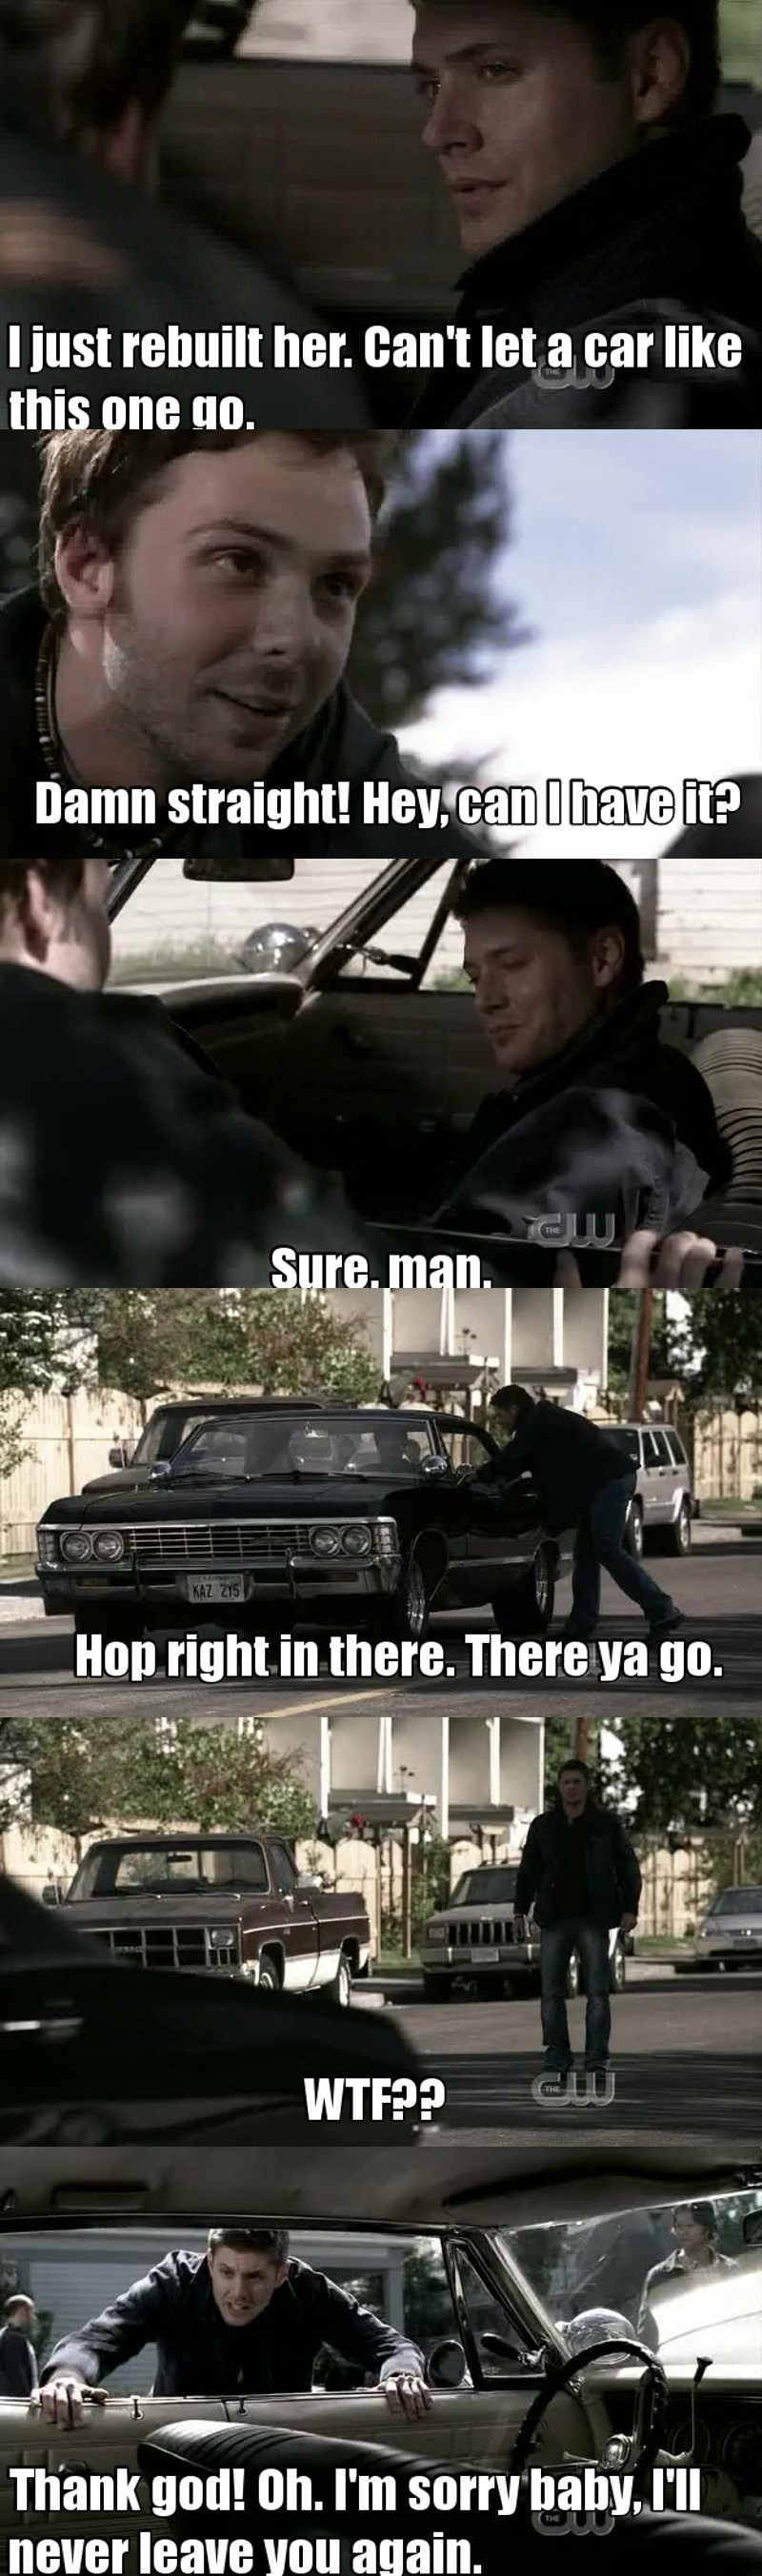 😂😂 Dean's love for his car is pure gold! XD